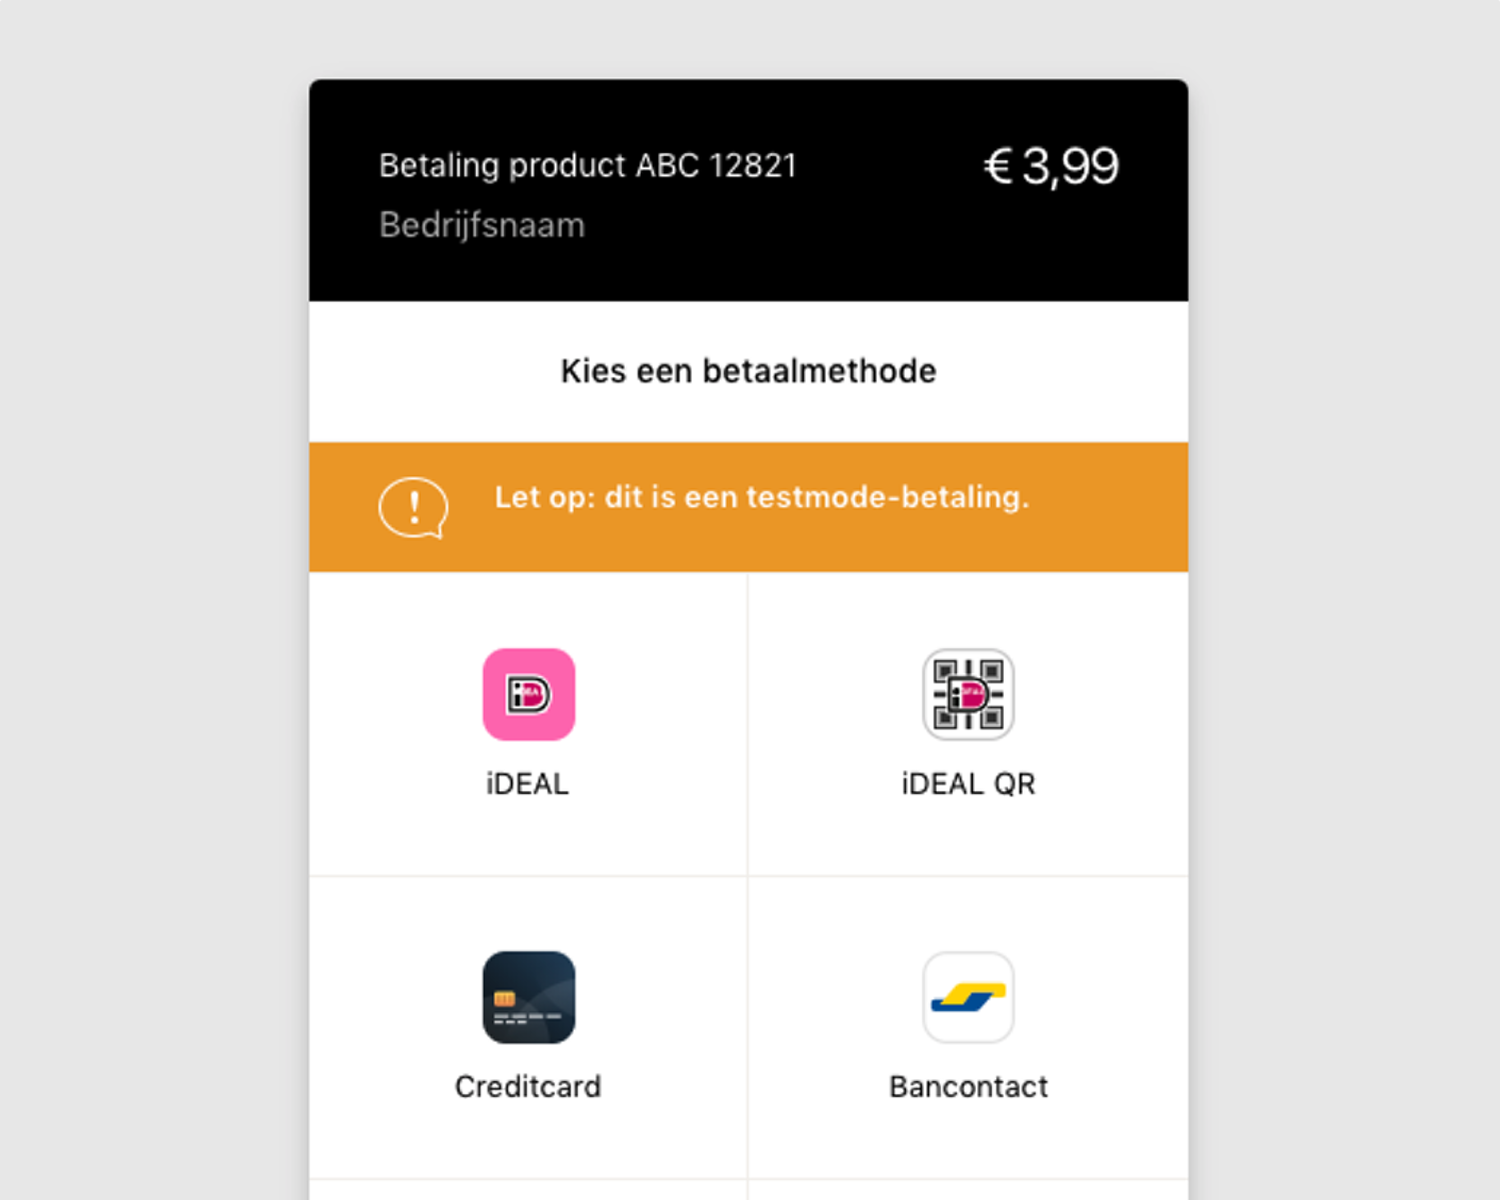 """<strong>Payments processed via Mollie.com</strong> - After clicking """"Pay"""" visitors will immediately be redirected to secure payment provider Mollie, which will process the payments and wire the funds to your own bank account. Mollie is certified by the Dutch national bank 'De Nederlandsche Bank (DNB)'."""